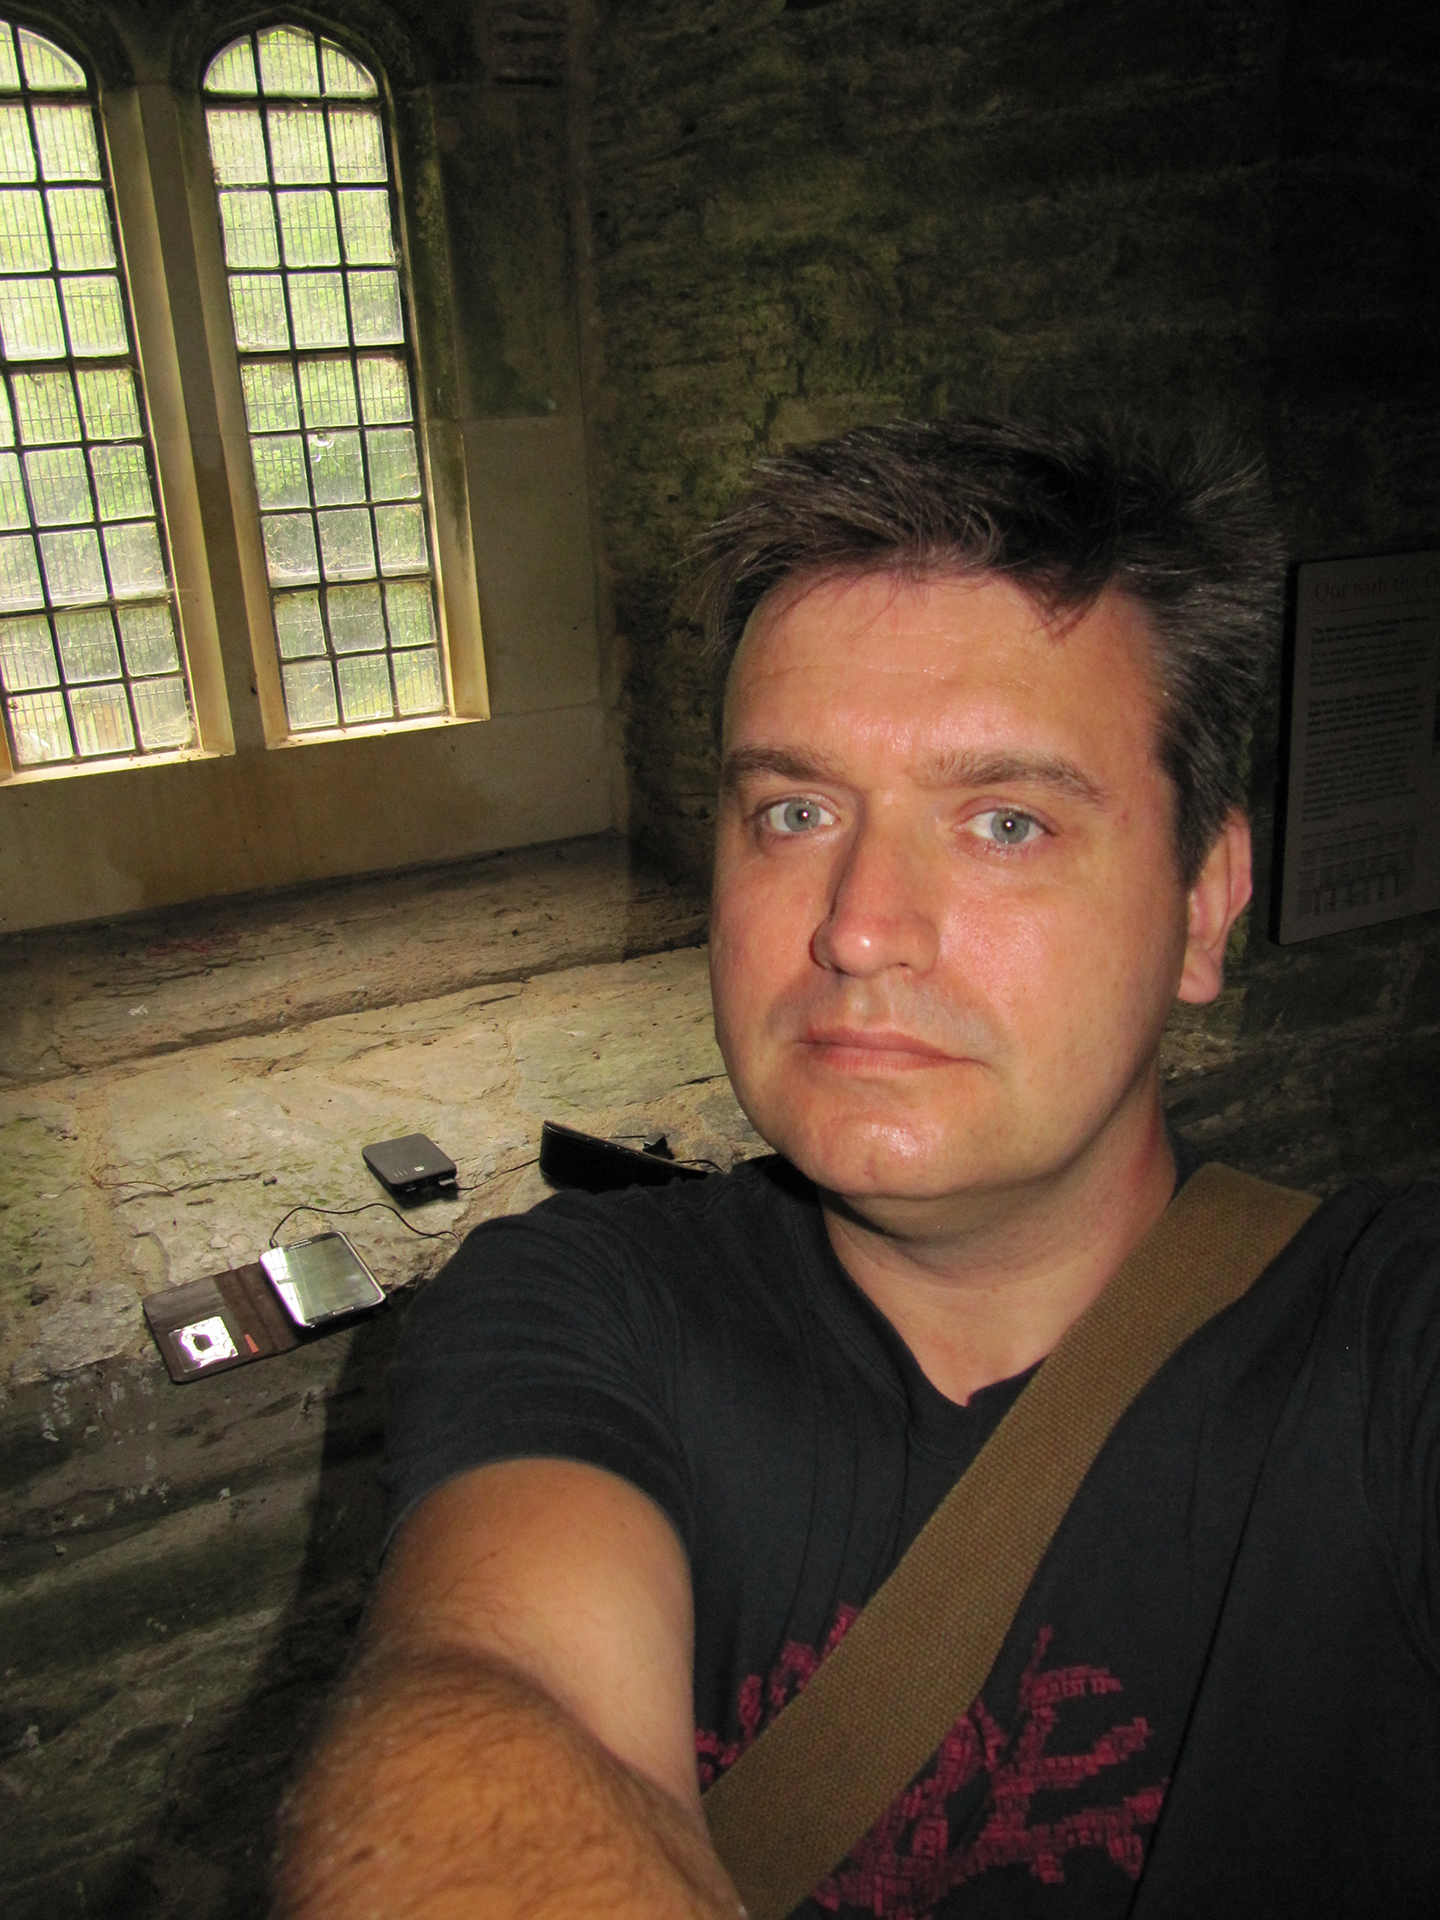 Steven with EchoVox set up and ready in the guard room at Berry Pomeroy Castle.